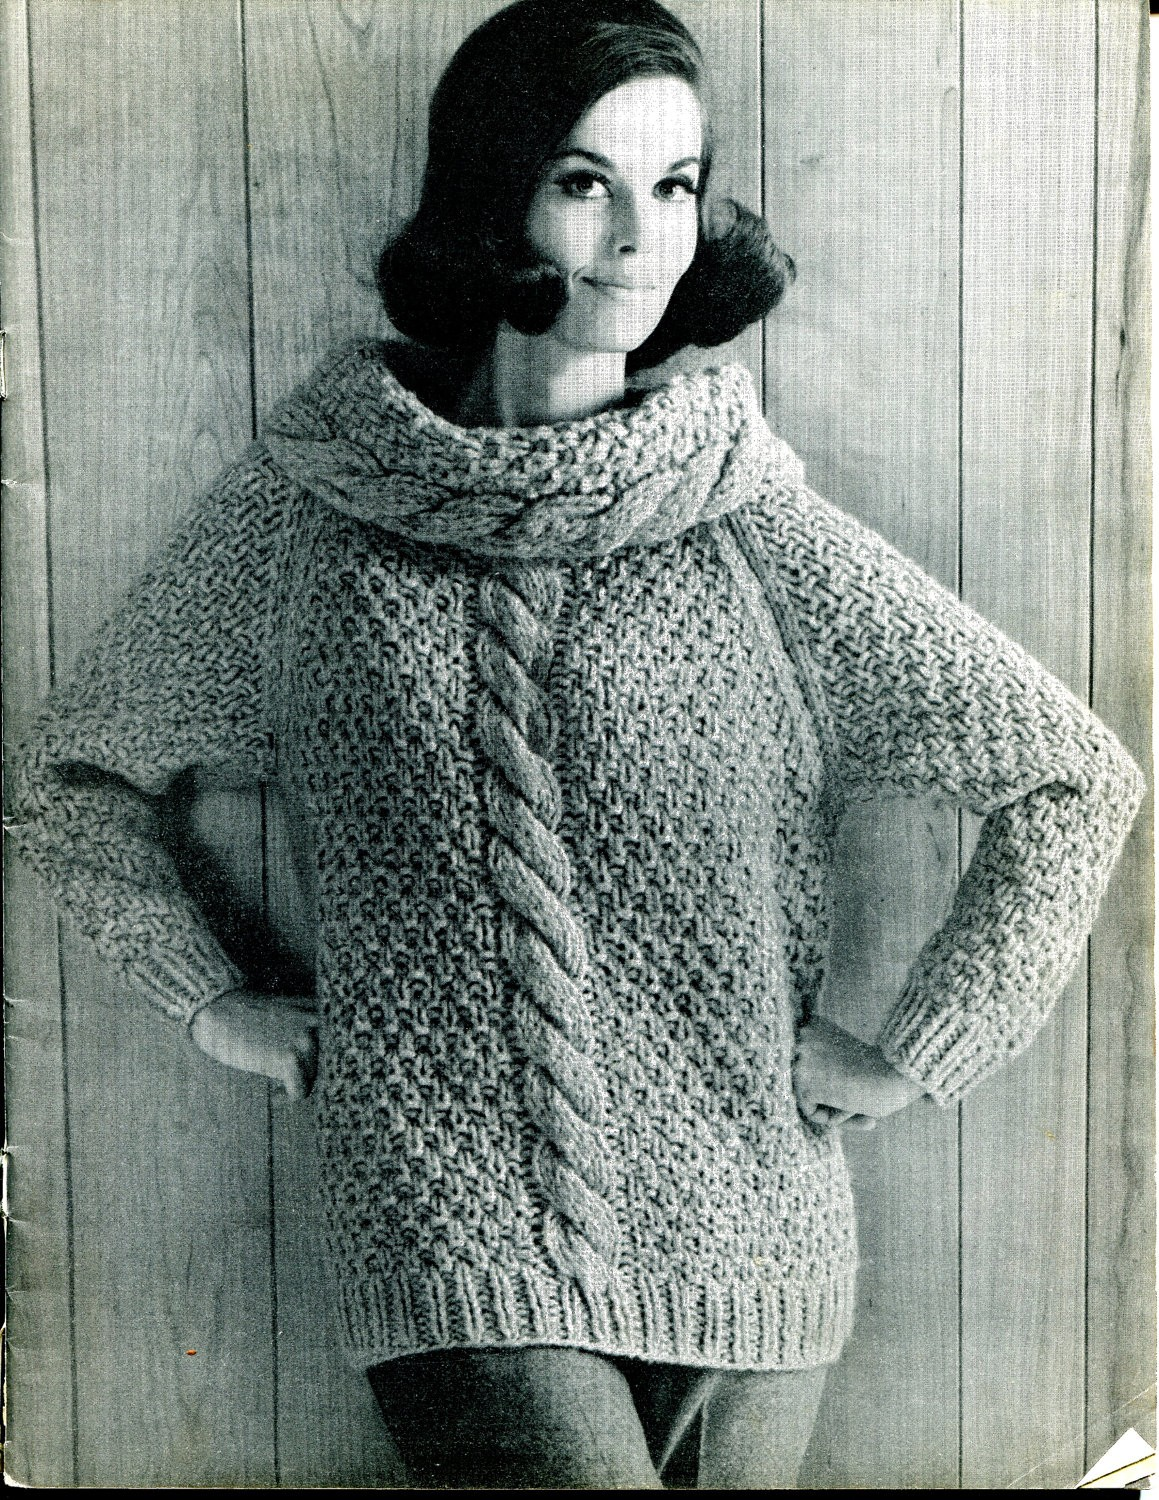 Sweater Knitting Design Pattern : Cable Knit Sweater Patterns A Knitting Blog